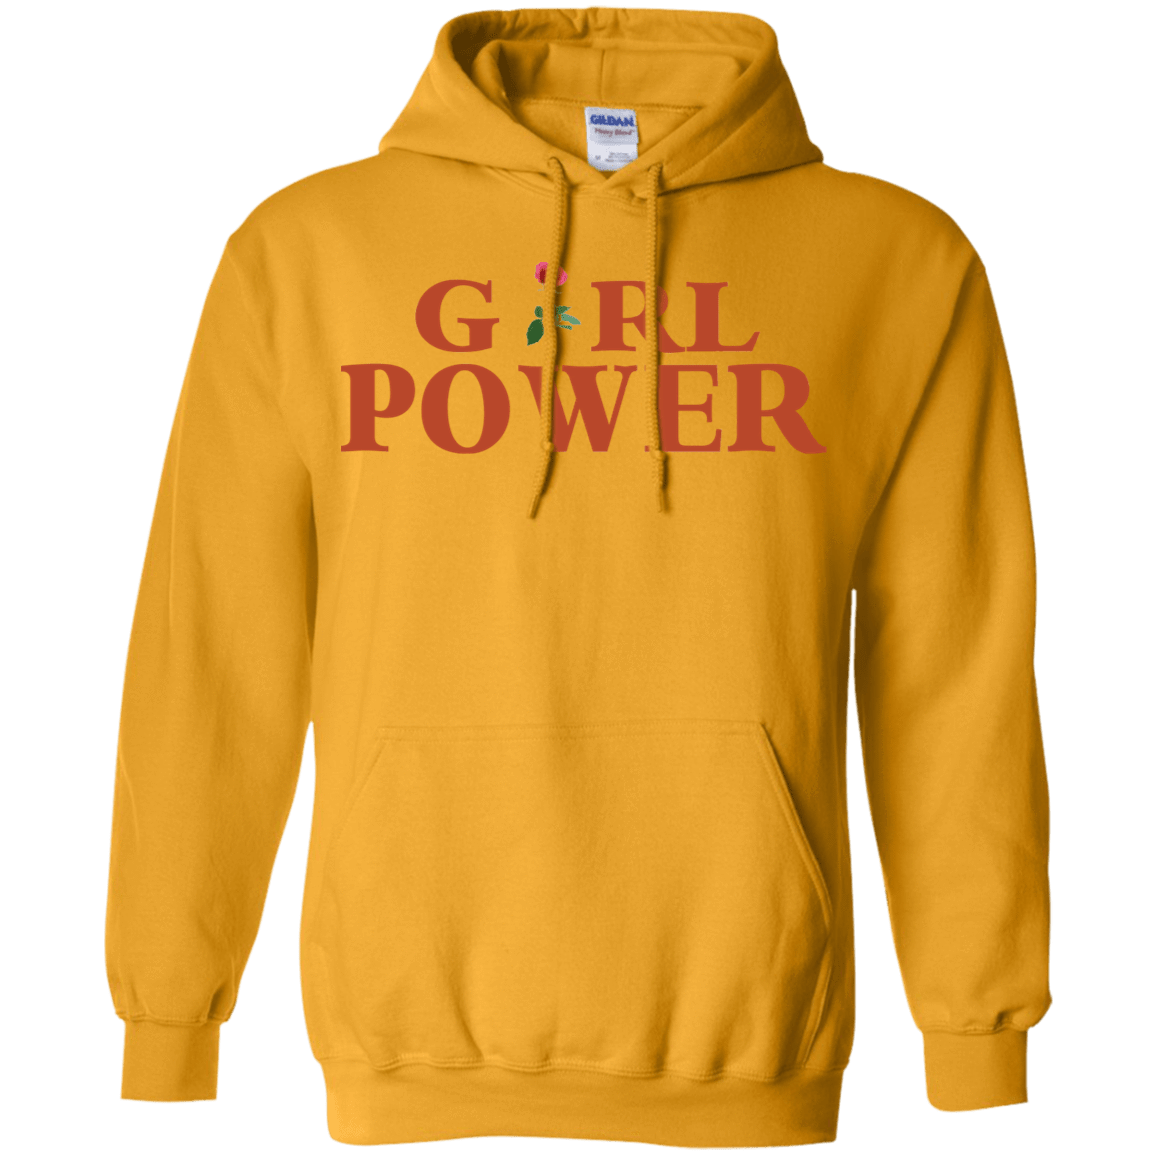 Girl Power Yellow 541-4754-73890288-23079 - Tee Ript